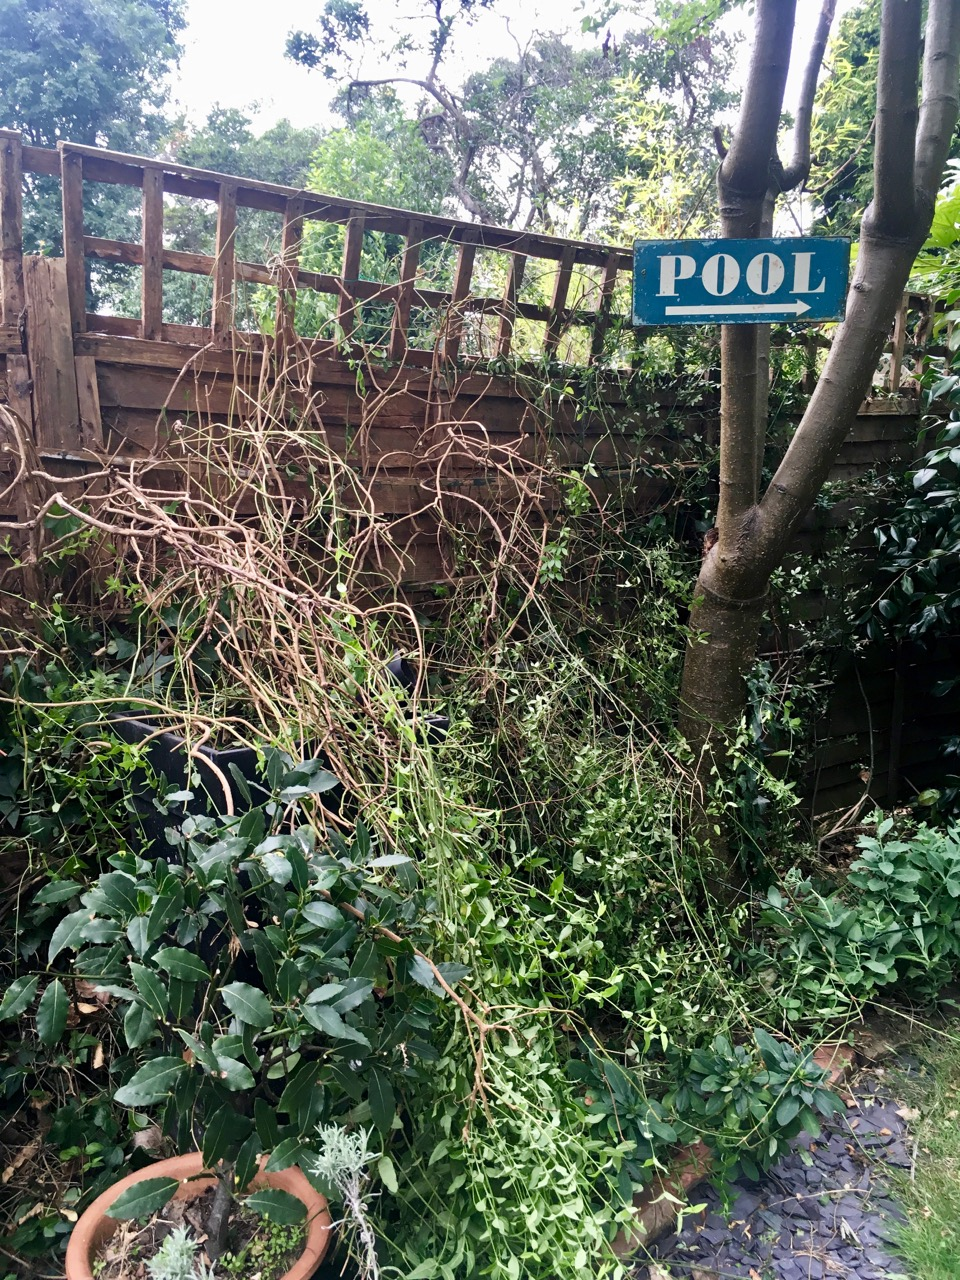 tidying and tying up plants on the fence